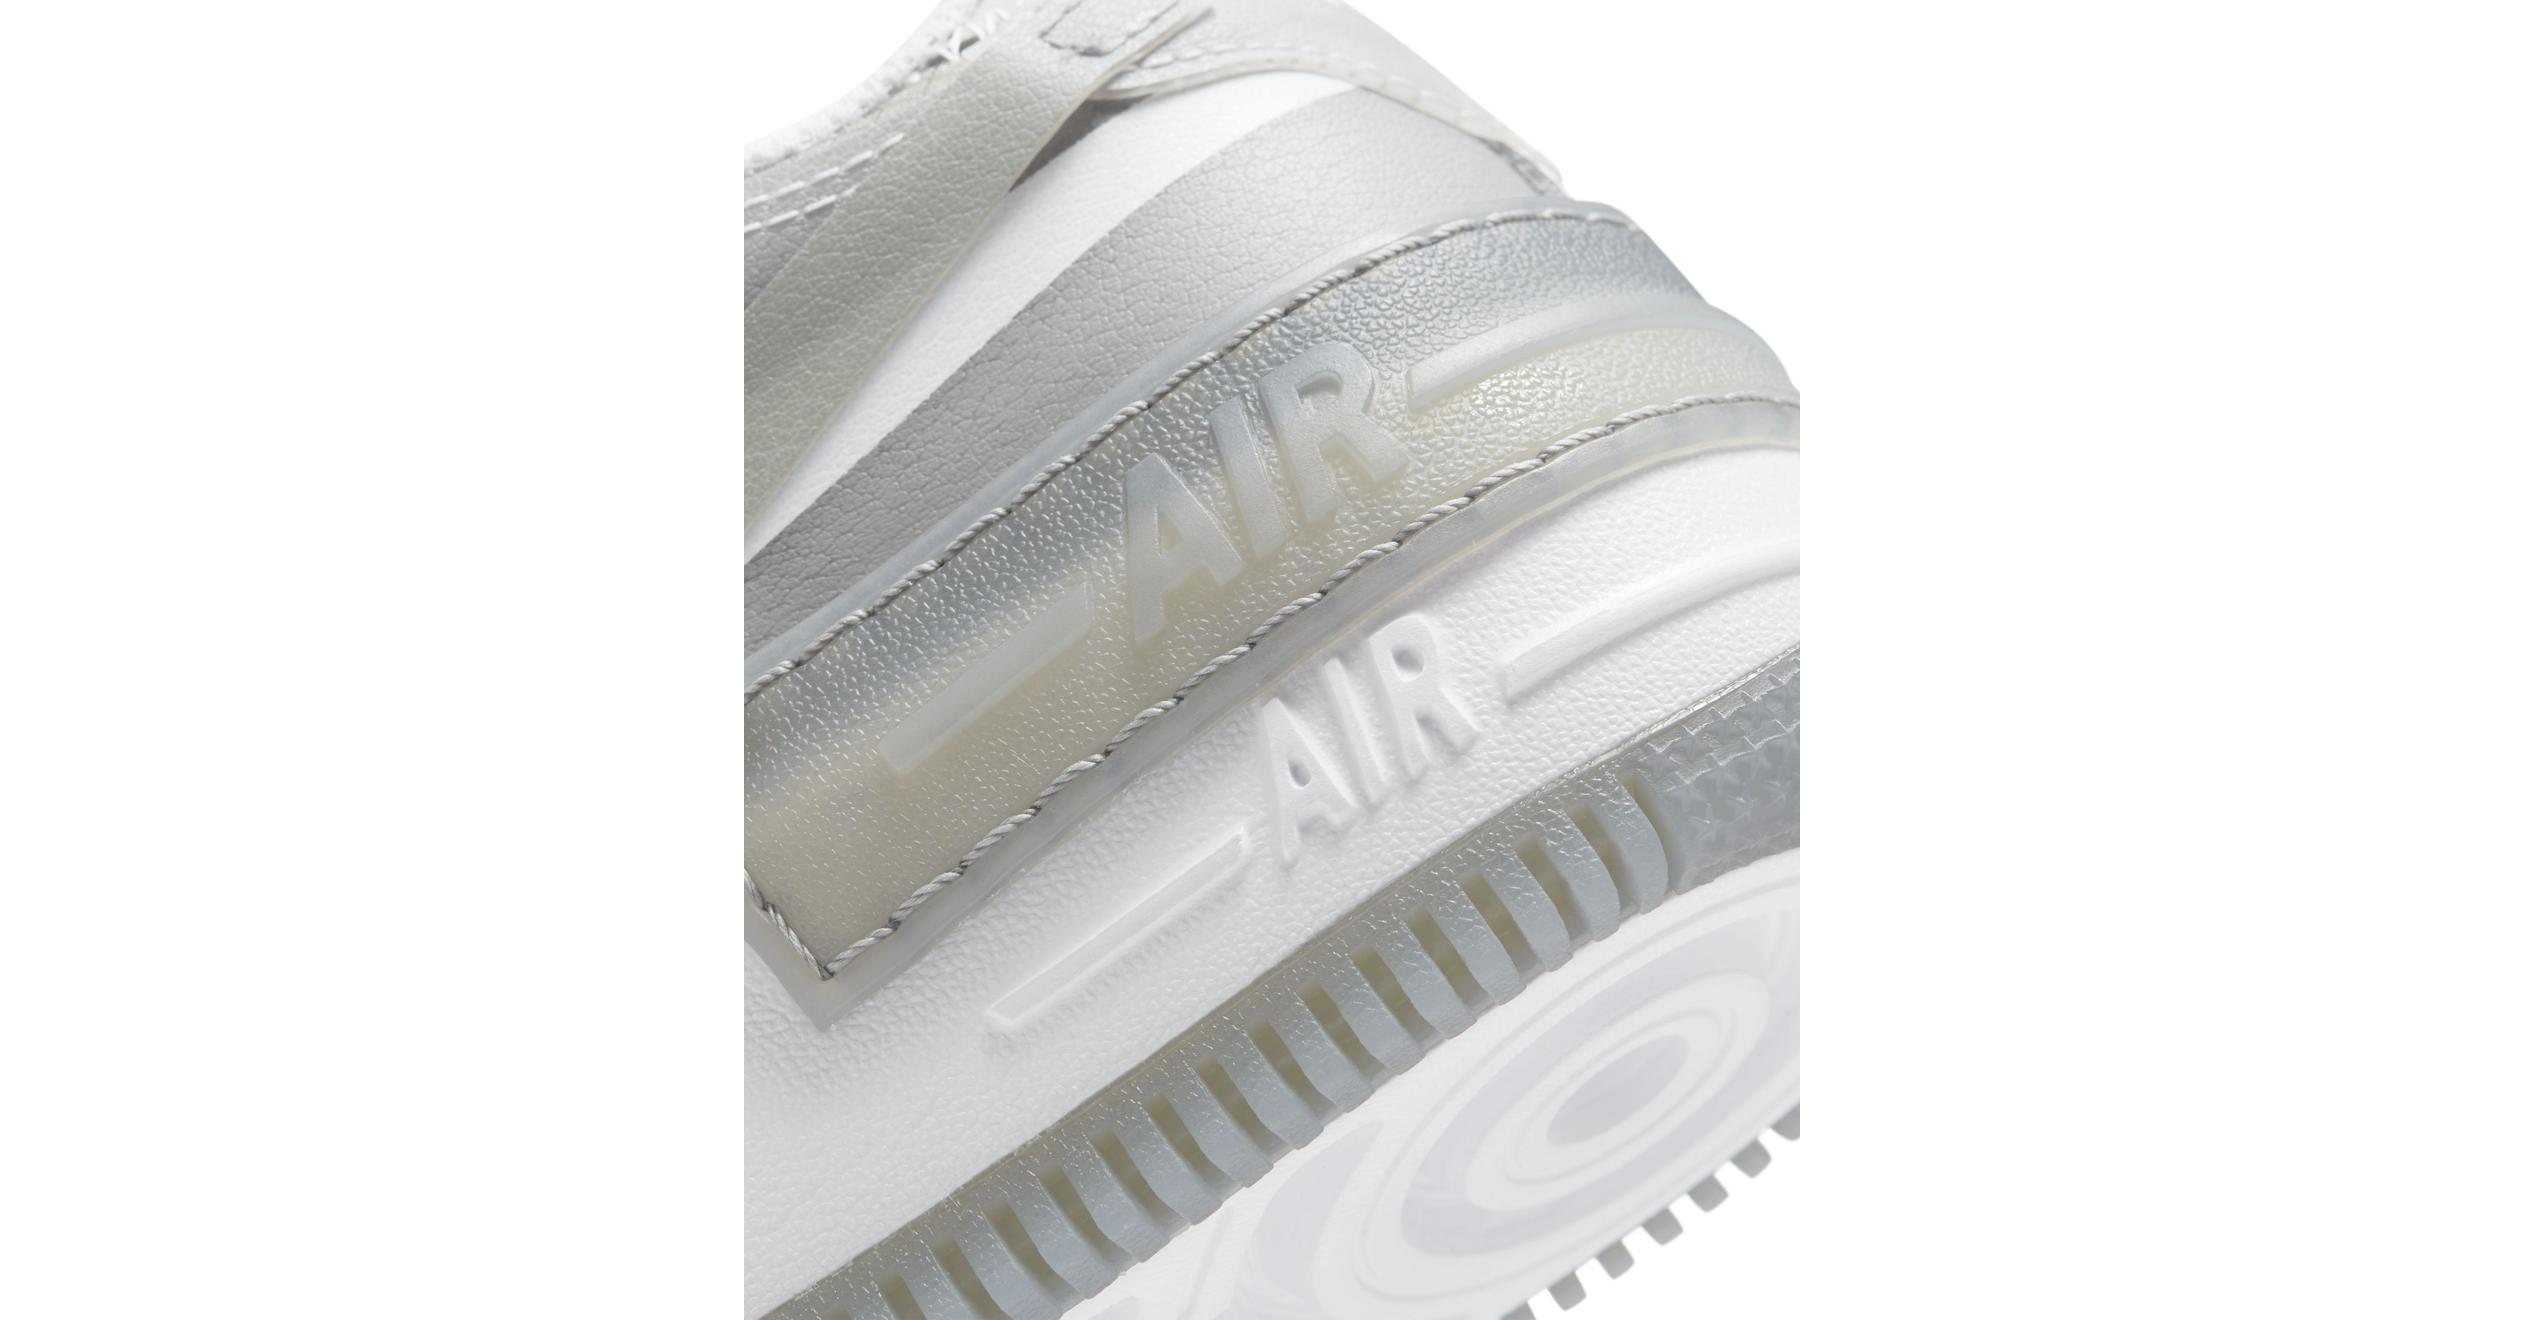 Nike Air Force 1 Shadow SE White/Grey Fog/Photon Dust/Particle Grey